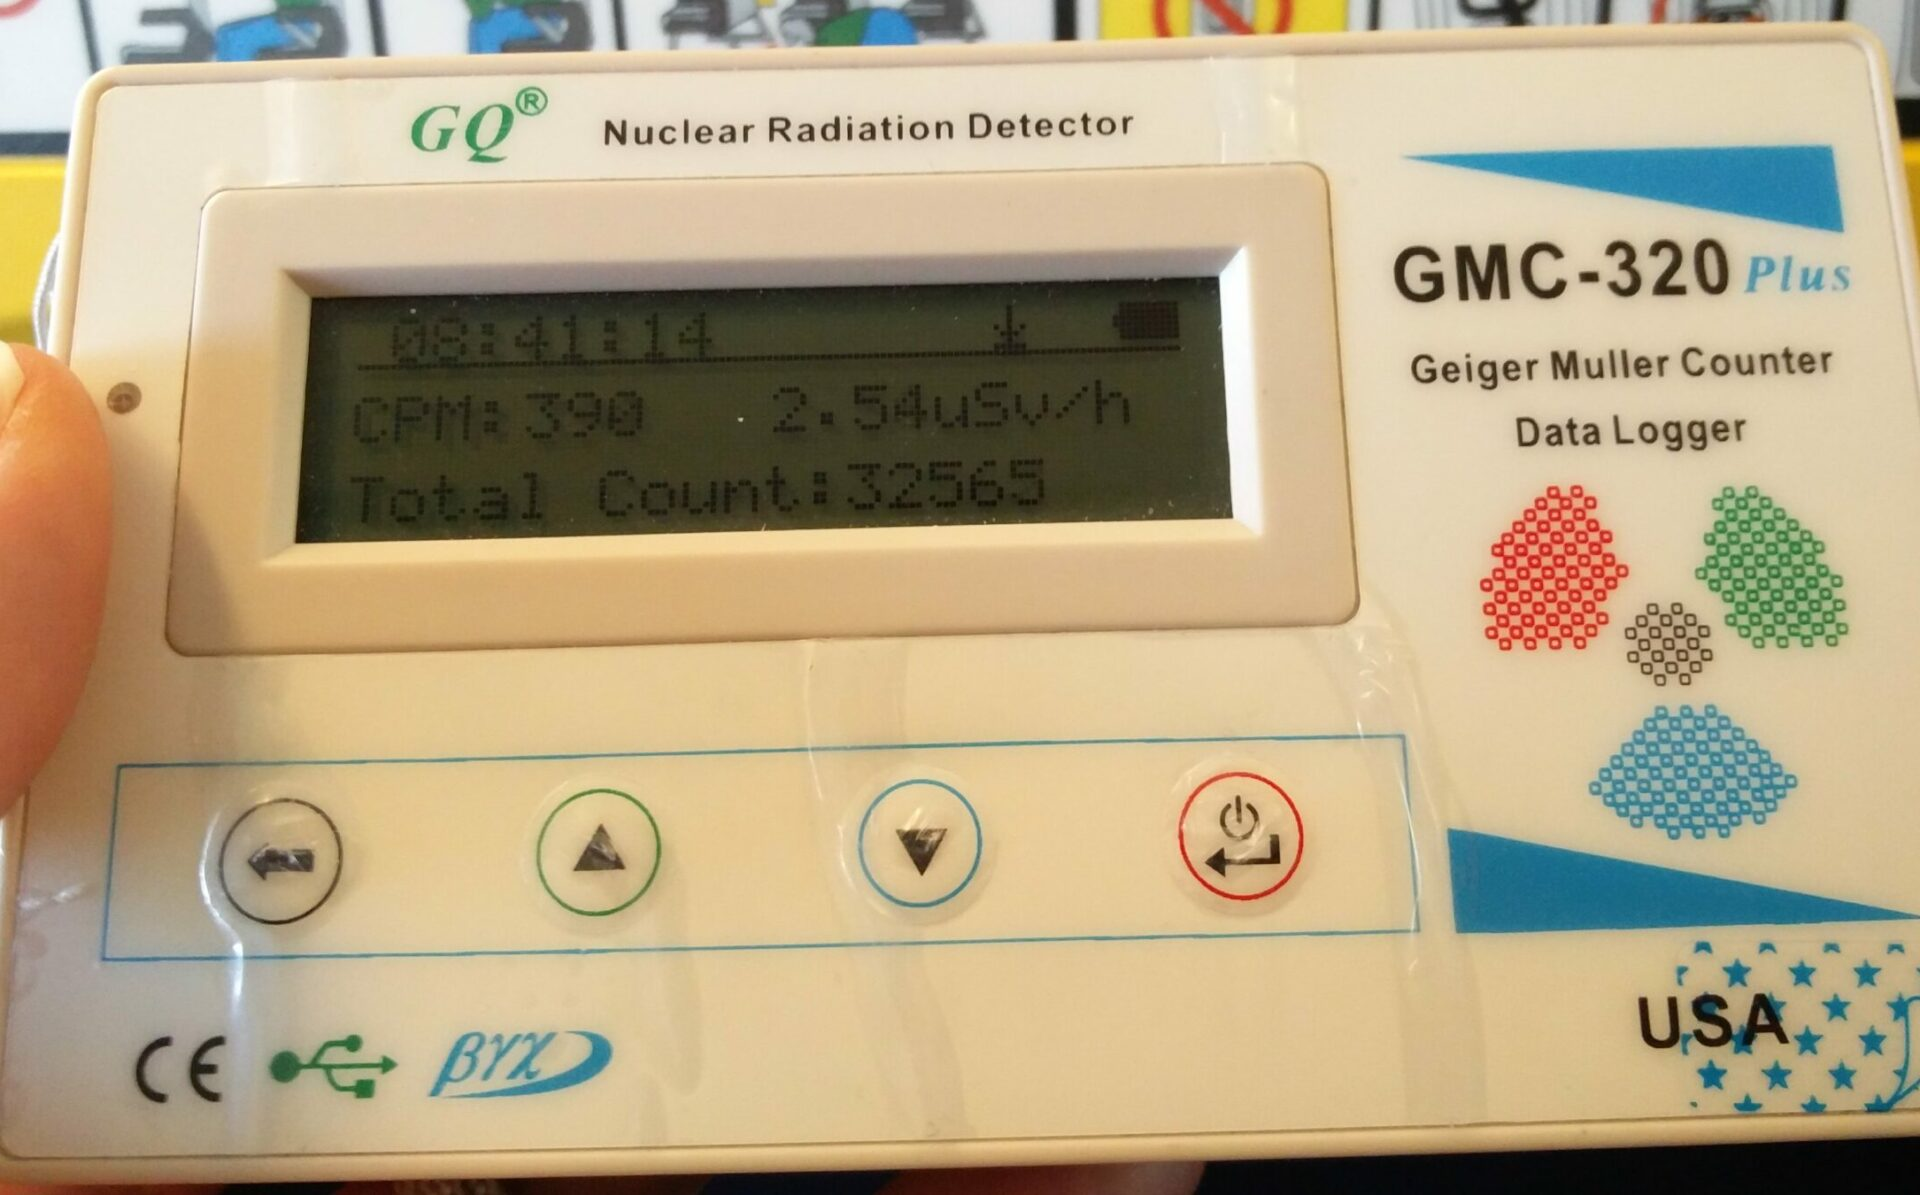 Geiger counter showing 2.54 µS/h on travel altitude in the plane.